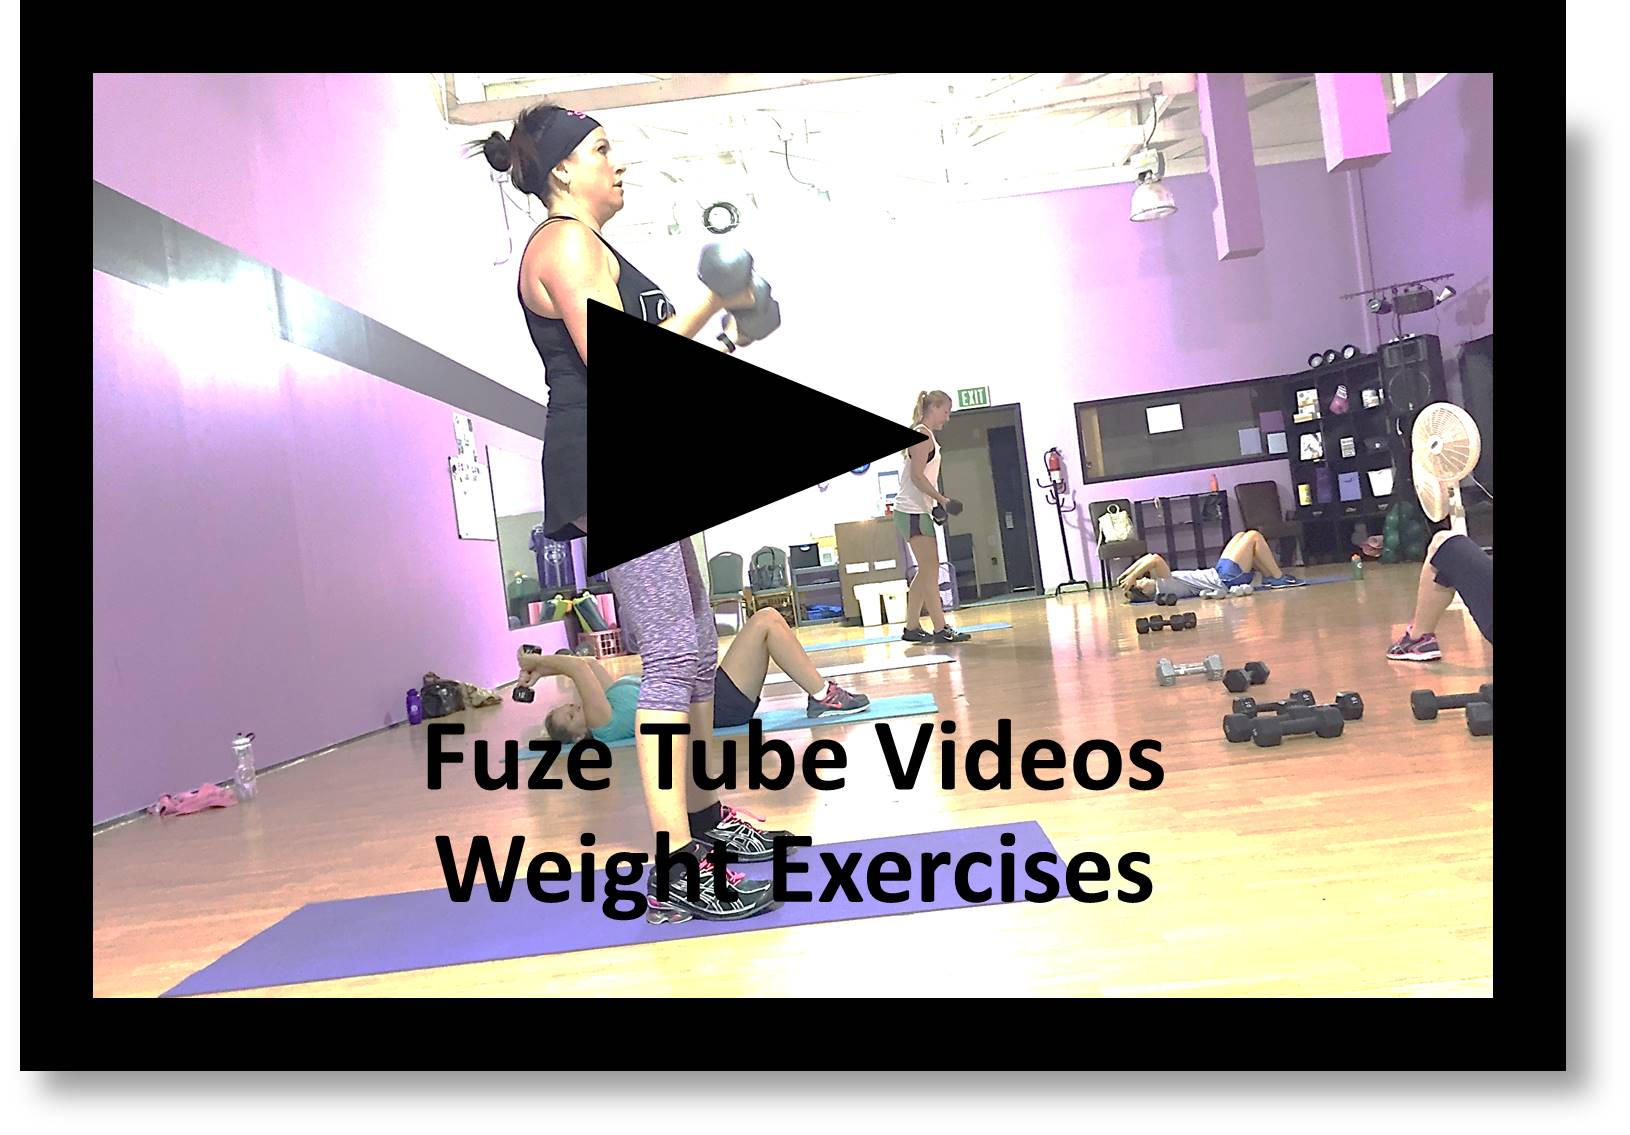 fuze-tube-weighted-exer